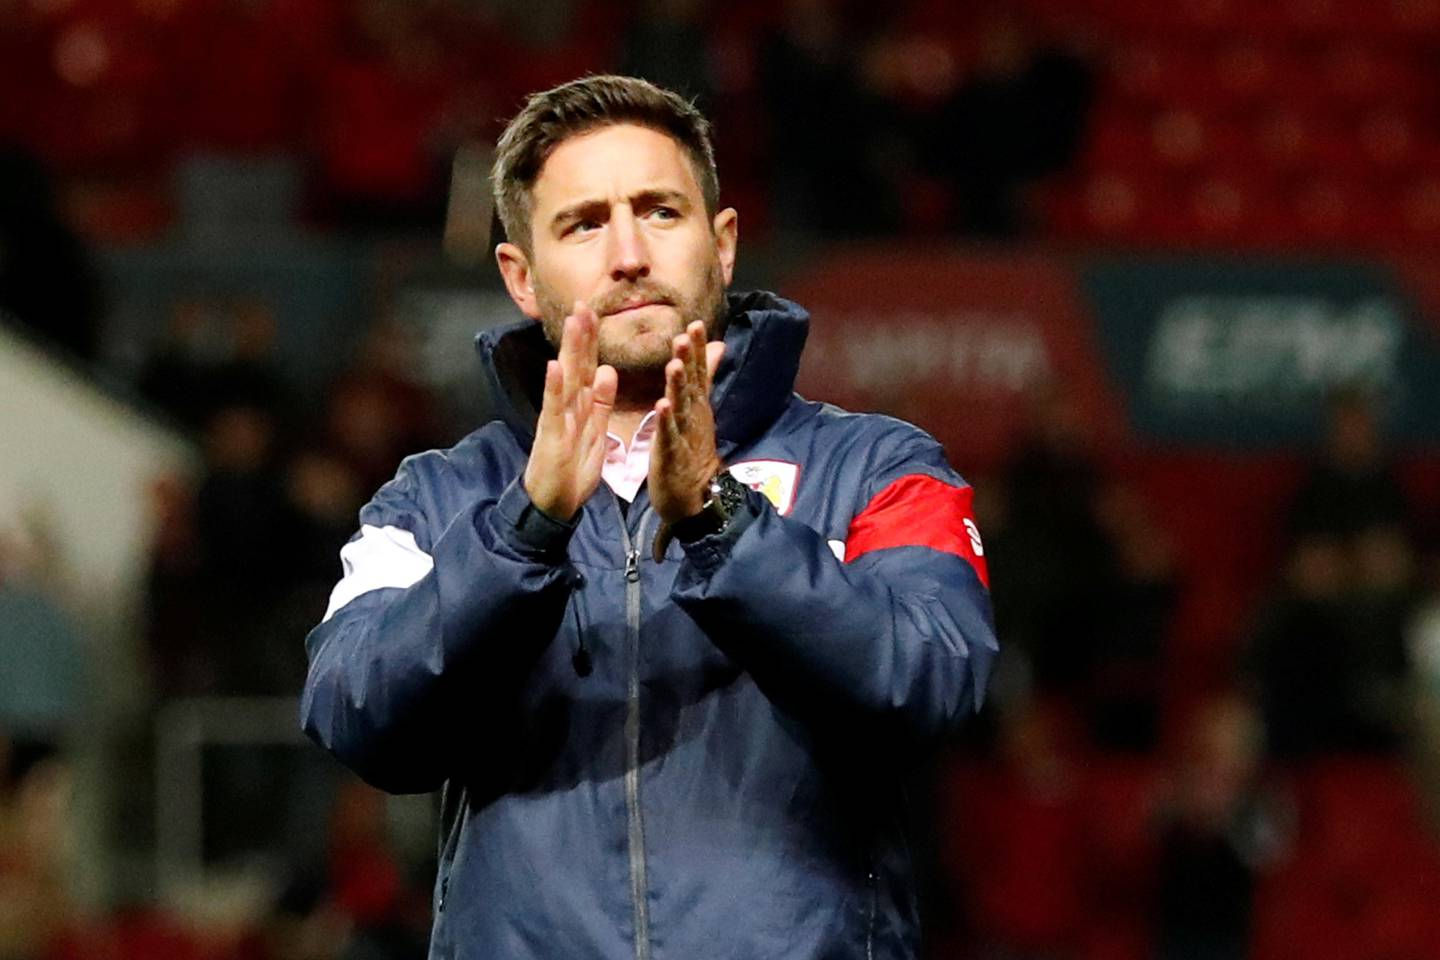 """Soccer Football - Carabao Cup Third Round - Bristol City vs Stoke City - Ashton Gate Stadium, Bristol, Britain - September 19, 2017  Bristol City manager Lee Johnson applauds the fans after the match   Action Images via Reuters/Andrew Boyers   EDITORIAL USE ONLY. No use with unauthorized audio, video, data, fixture lists, club/league logos or """"live"""" services. Online in-match use limited to 75 images, no video emulation. No use in betting, games or single club/league/player publications. Please contact your account representative for further details."""